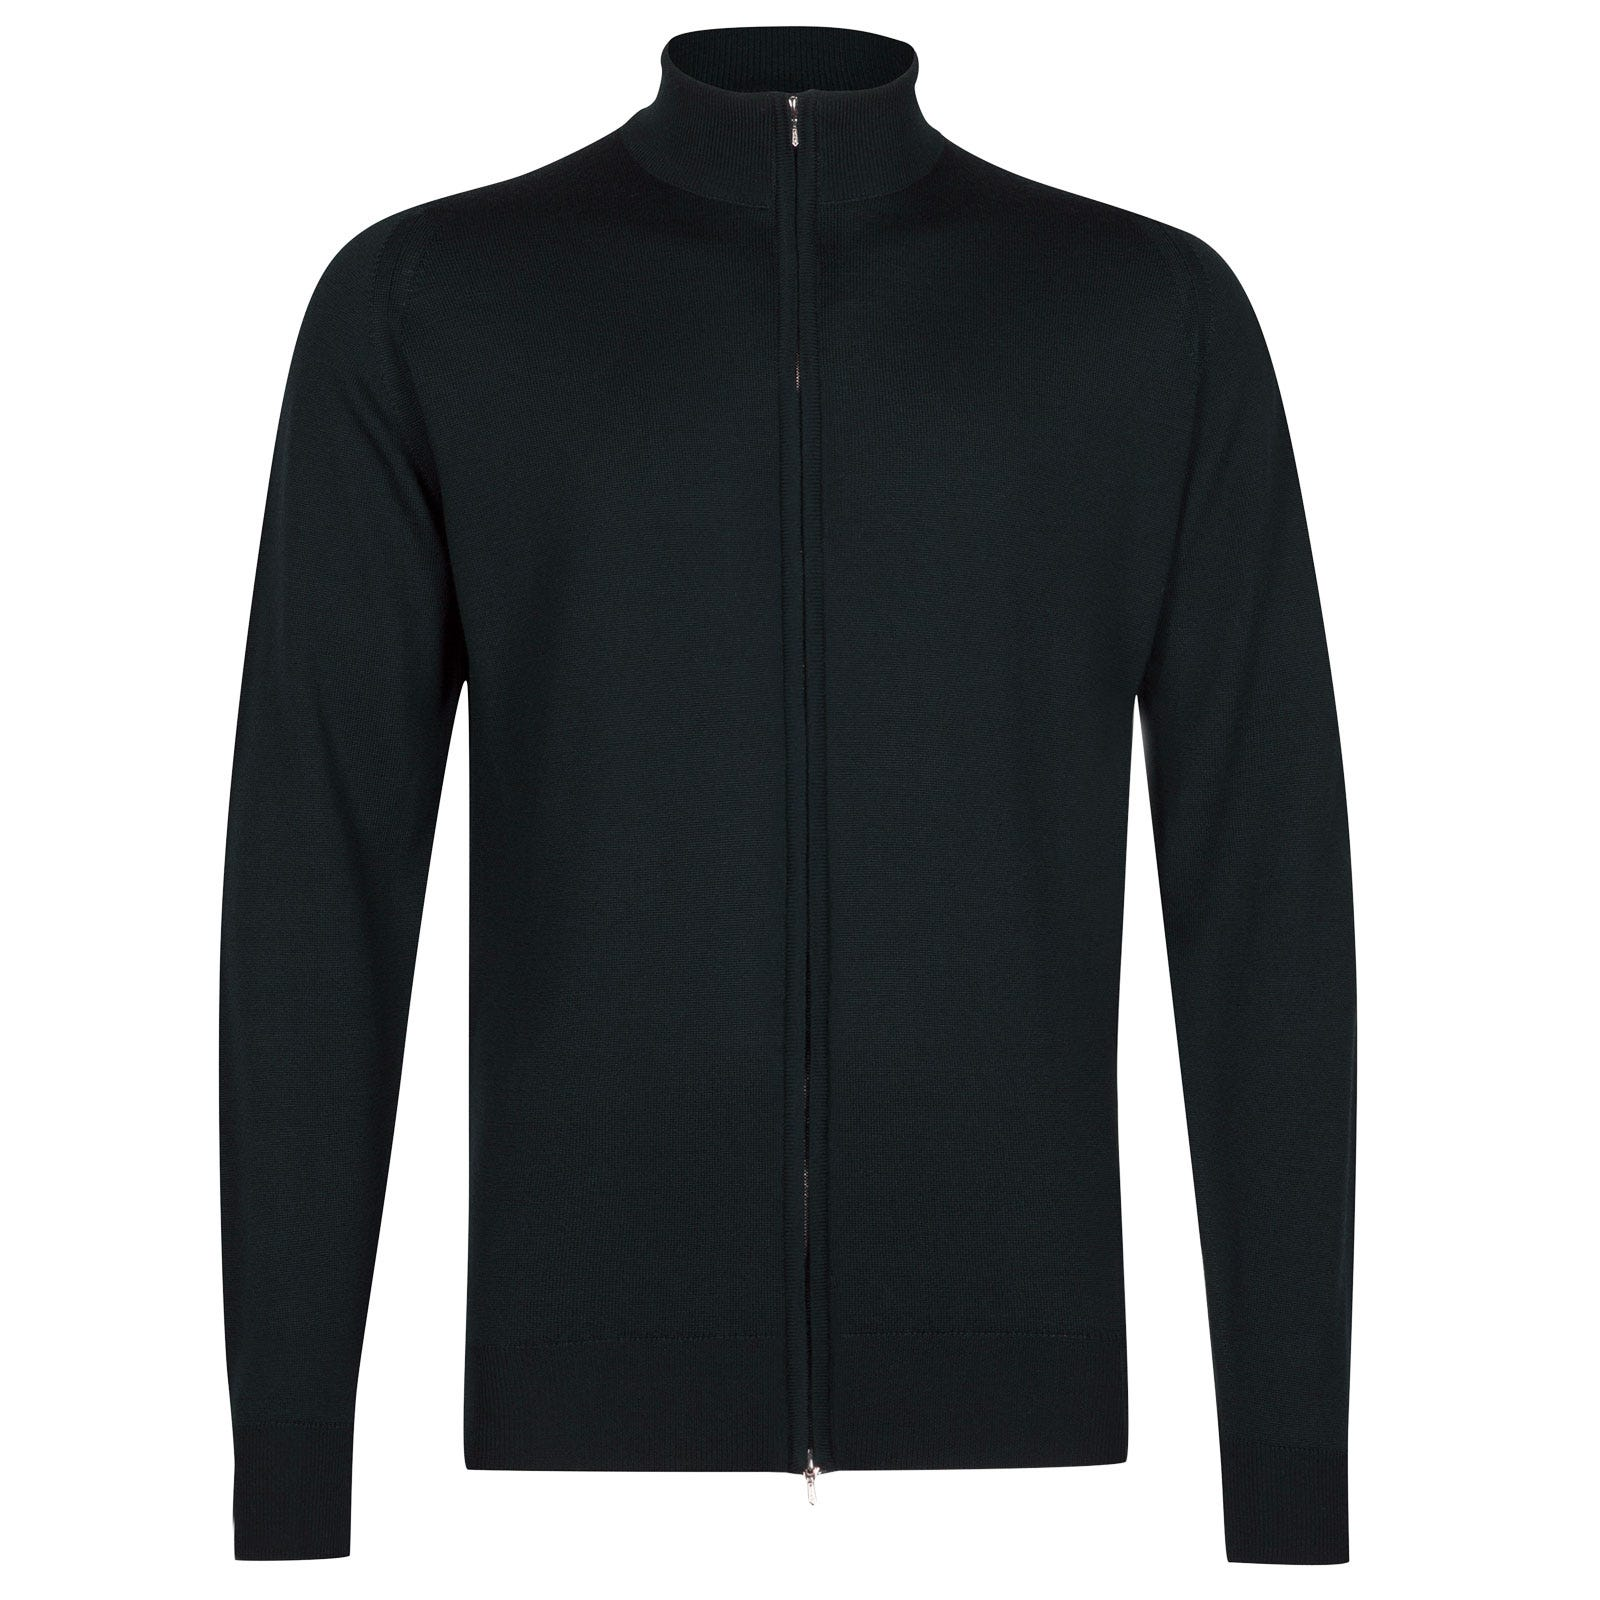 John Smedley claygate Merino Wool Jacket in Racing Green-XL